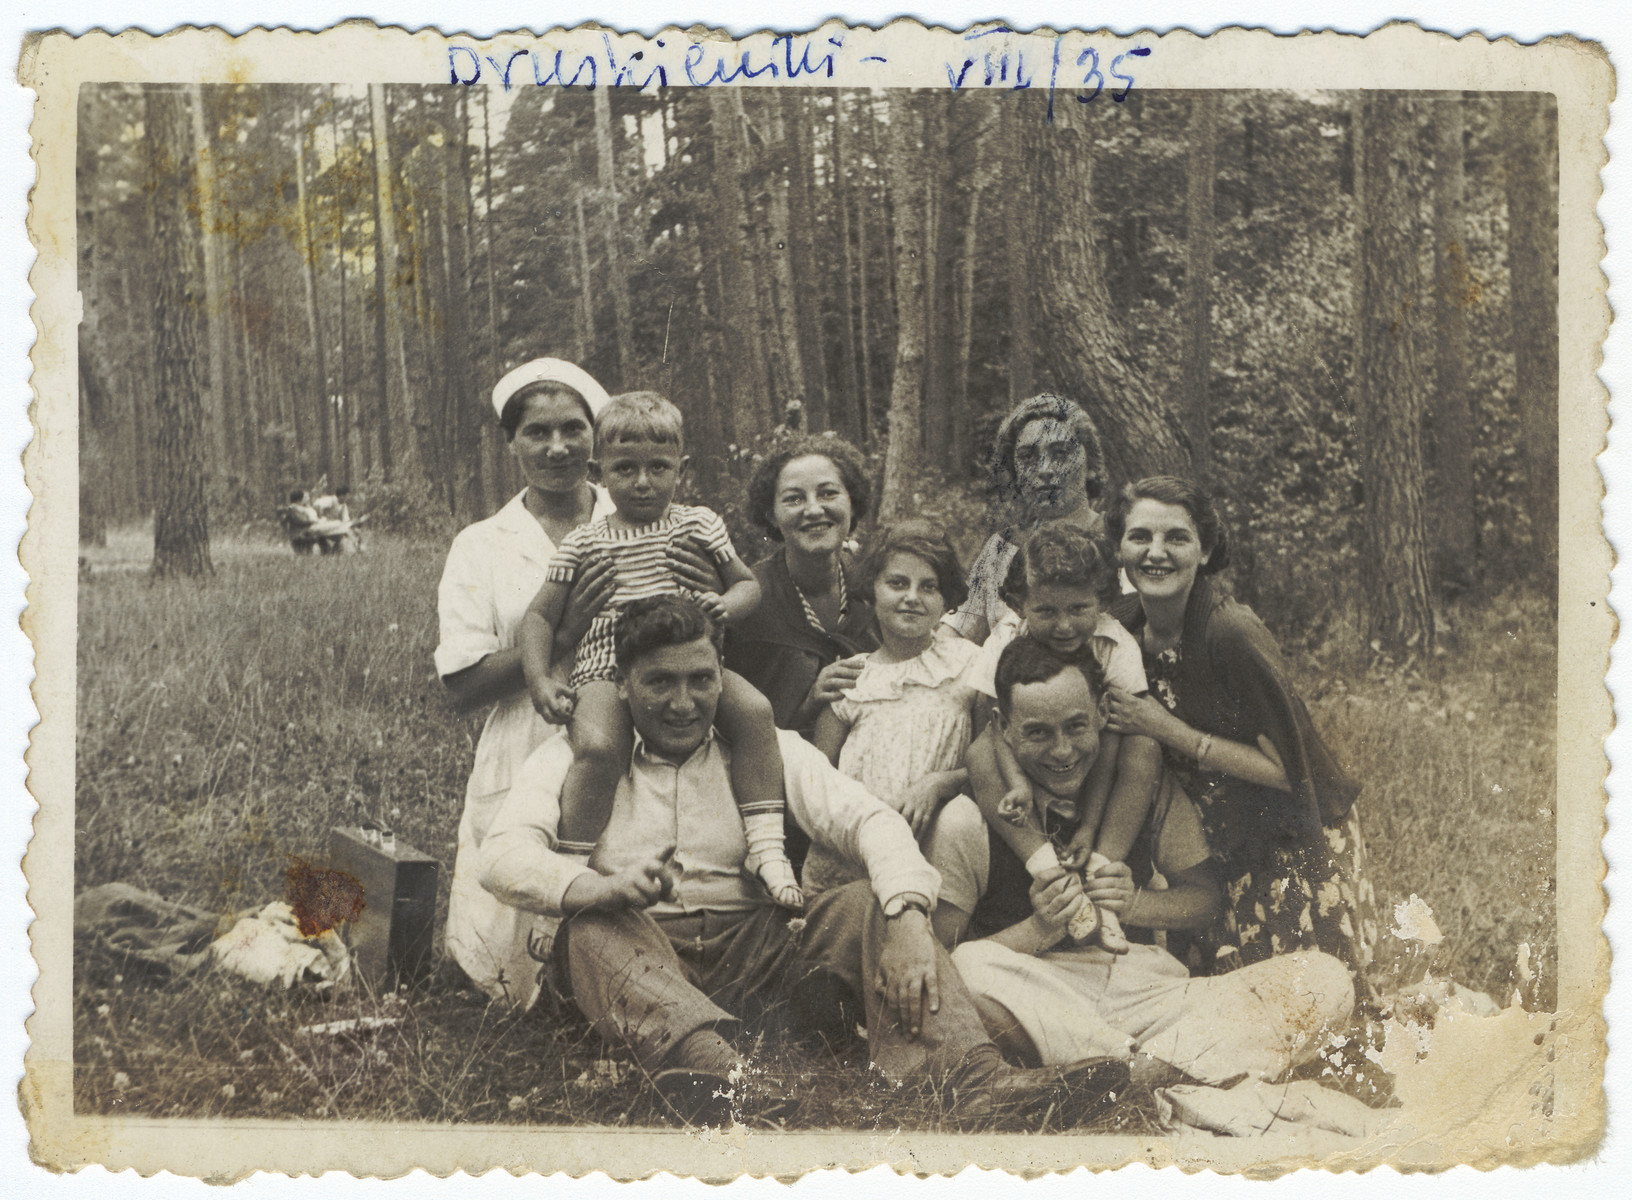 A group of friends and relatives vacations in a summer resort in the woods.  Among those pictured are Bernard Kuniegis with his son Jerzy on his shoulders on the right.  His wife Sara whose face is partially blotted out is behind him.